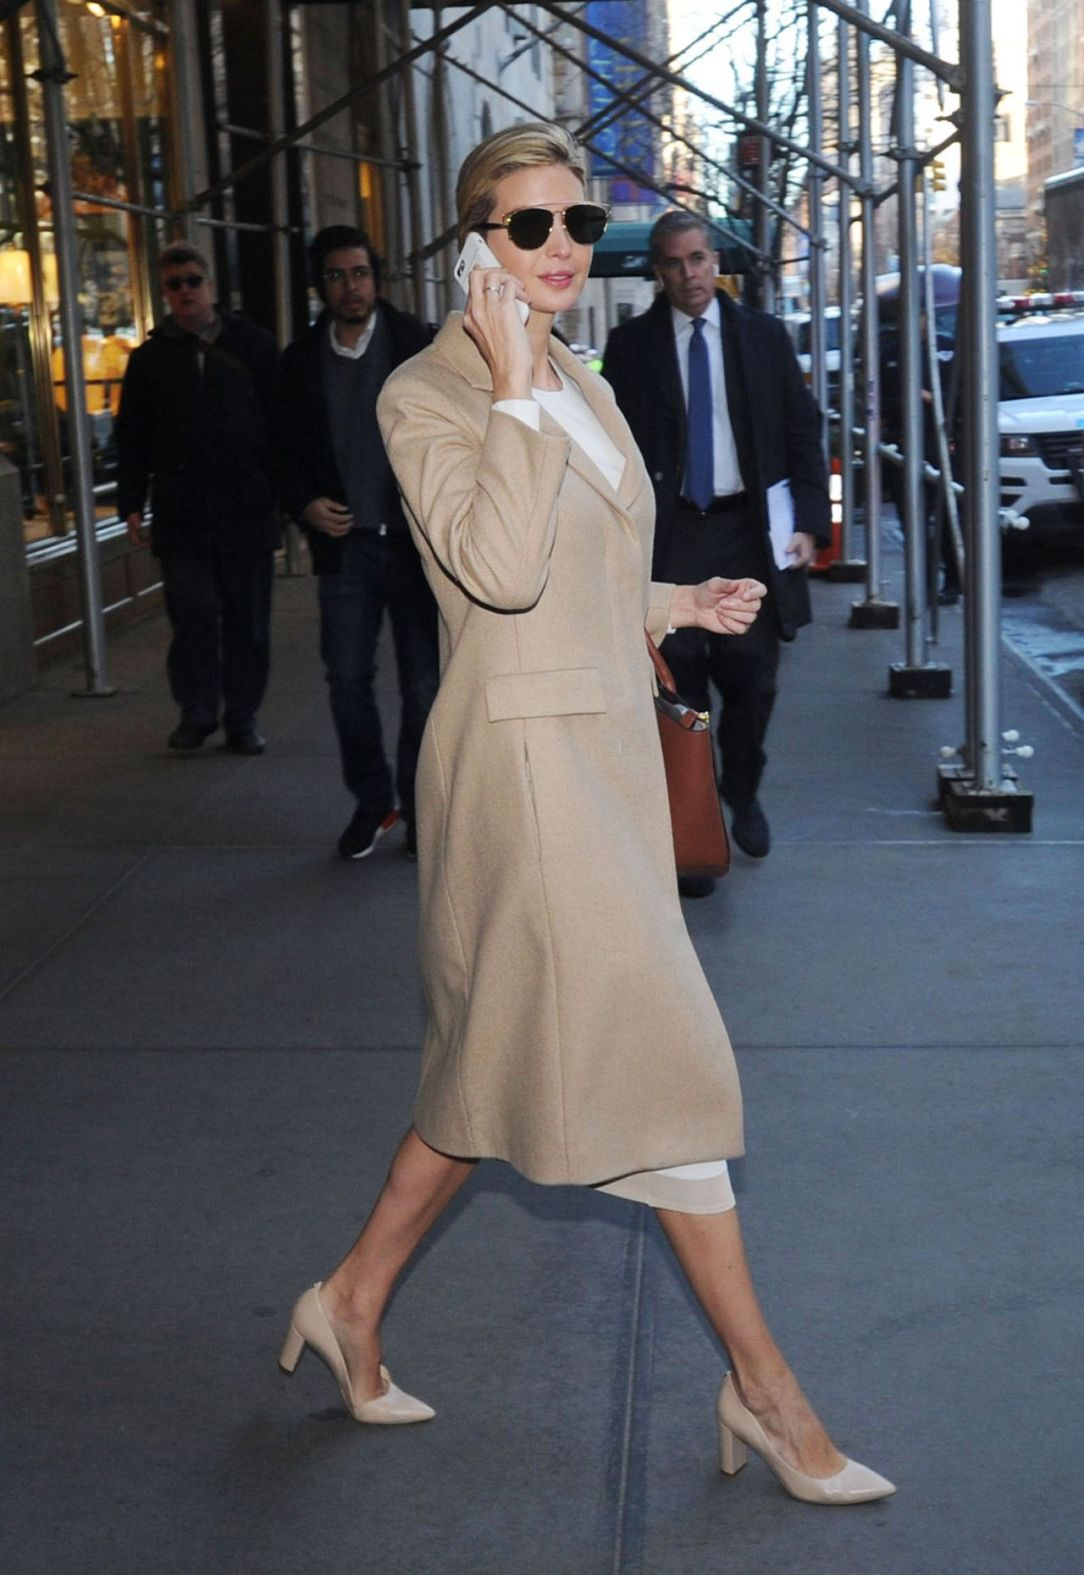 ivanka-trump-heads-to-work-while-on-her-cell-phone-in-new-york-1-12-2017-1